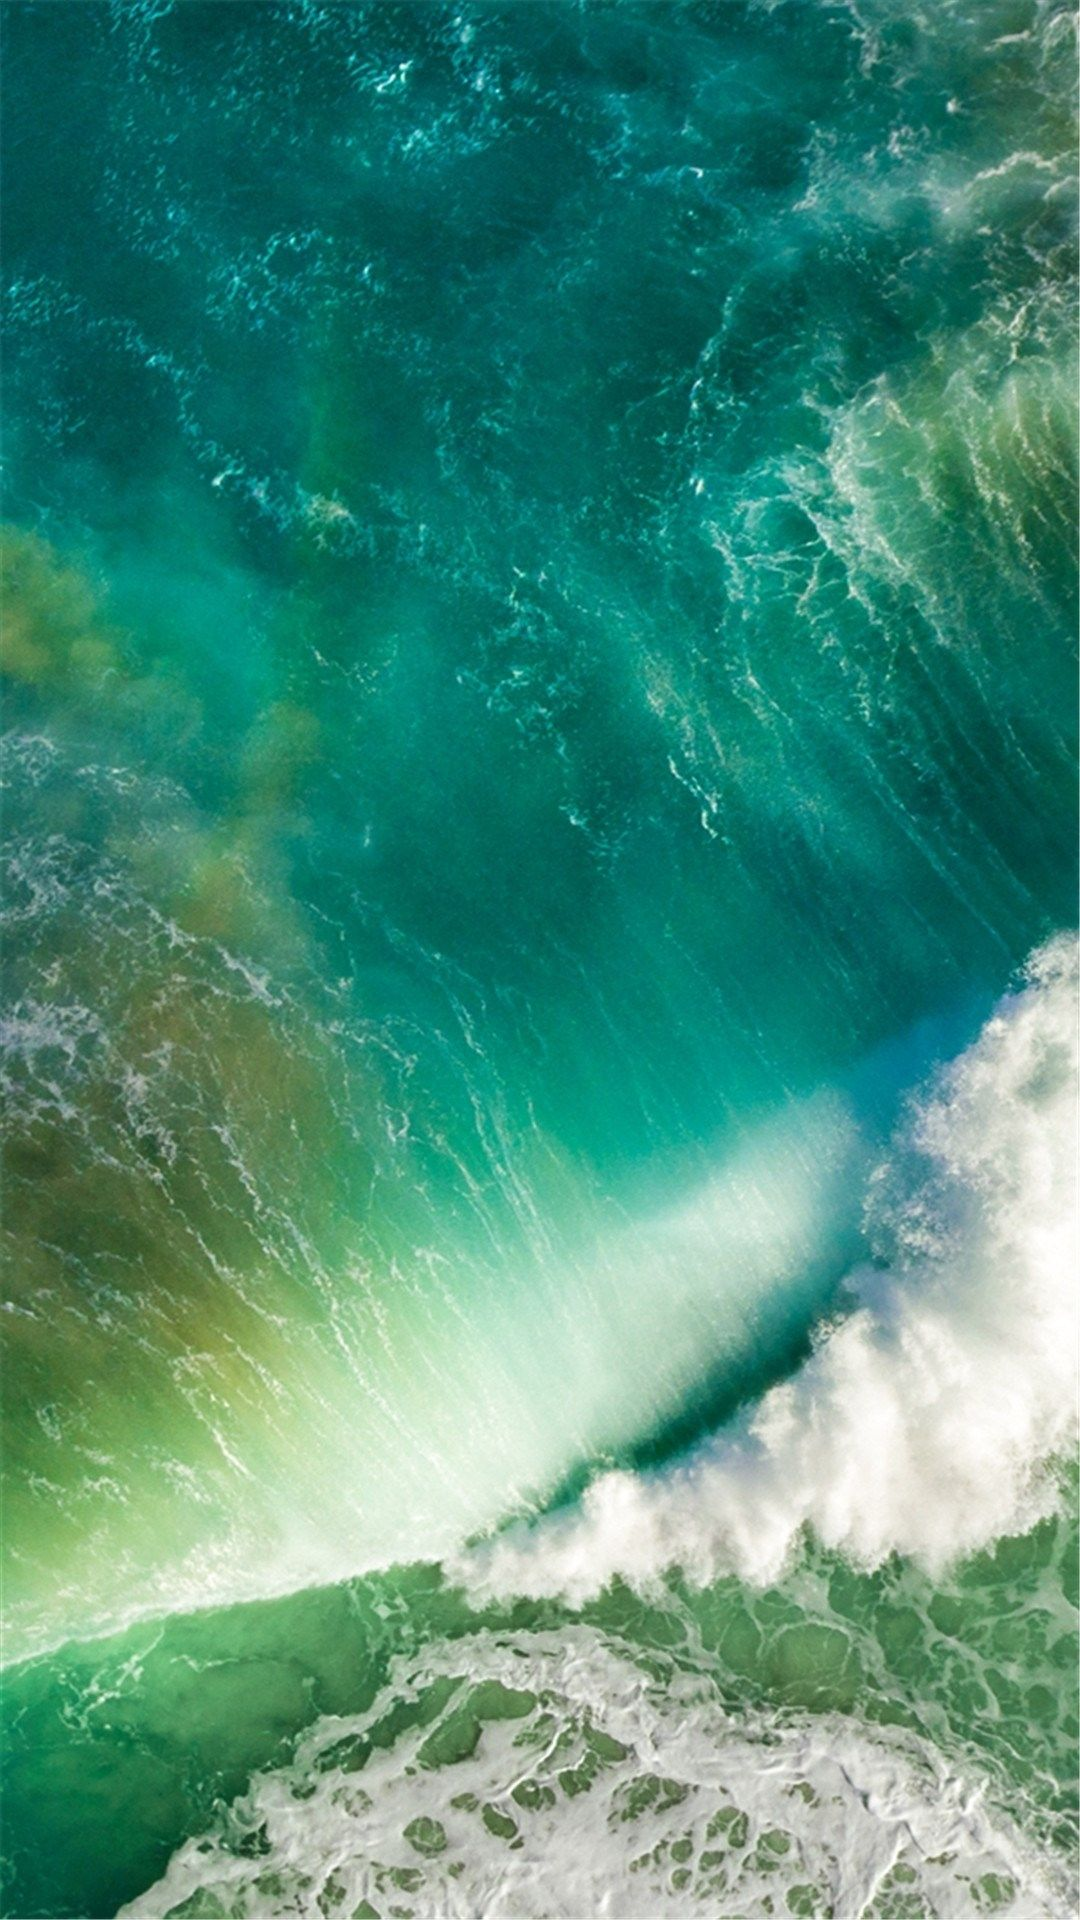 Macos Colorful Water Iphone 7 Wallpaper Iphone Wallpaper Ios Iphone Wallpaper Ios 10 Ios 10 Wallpaper